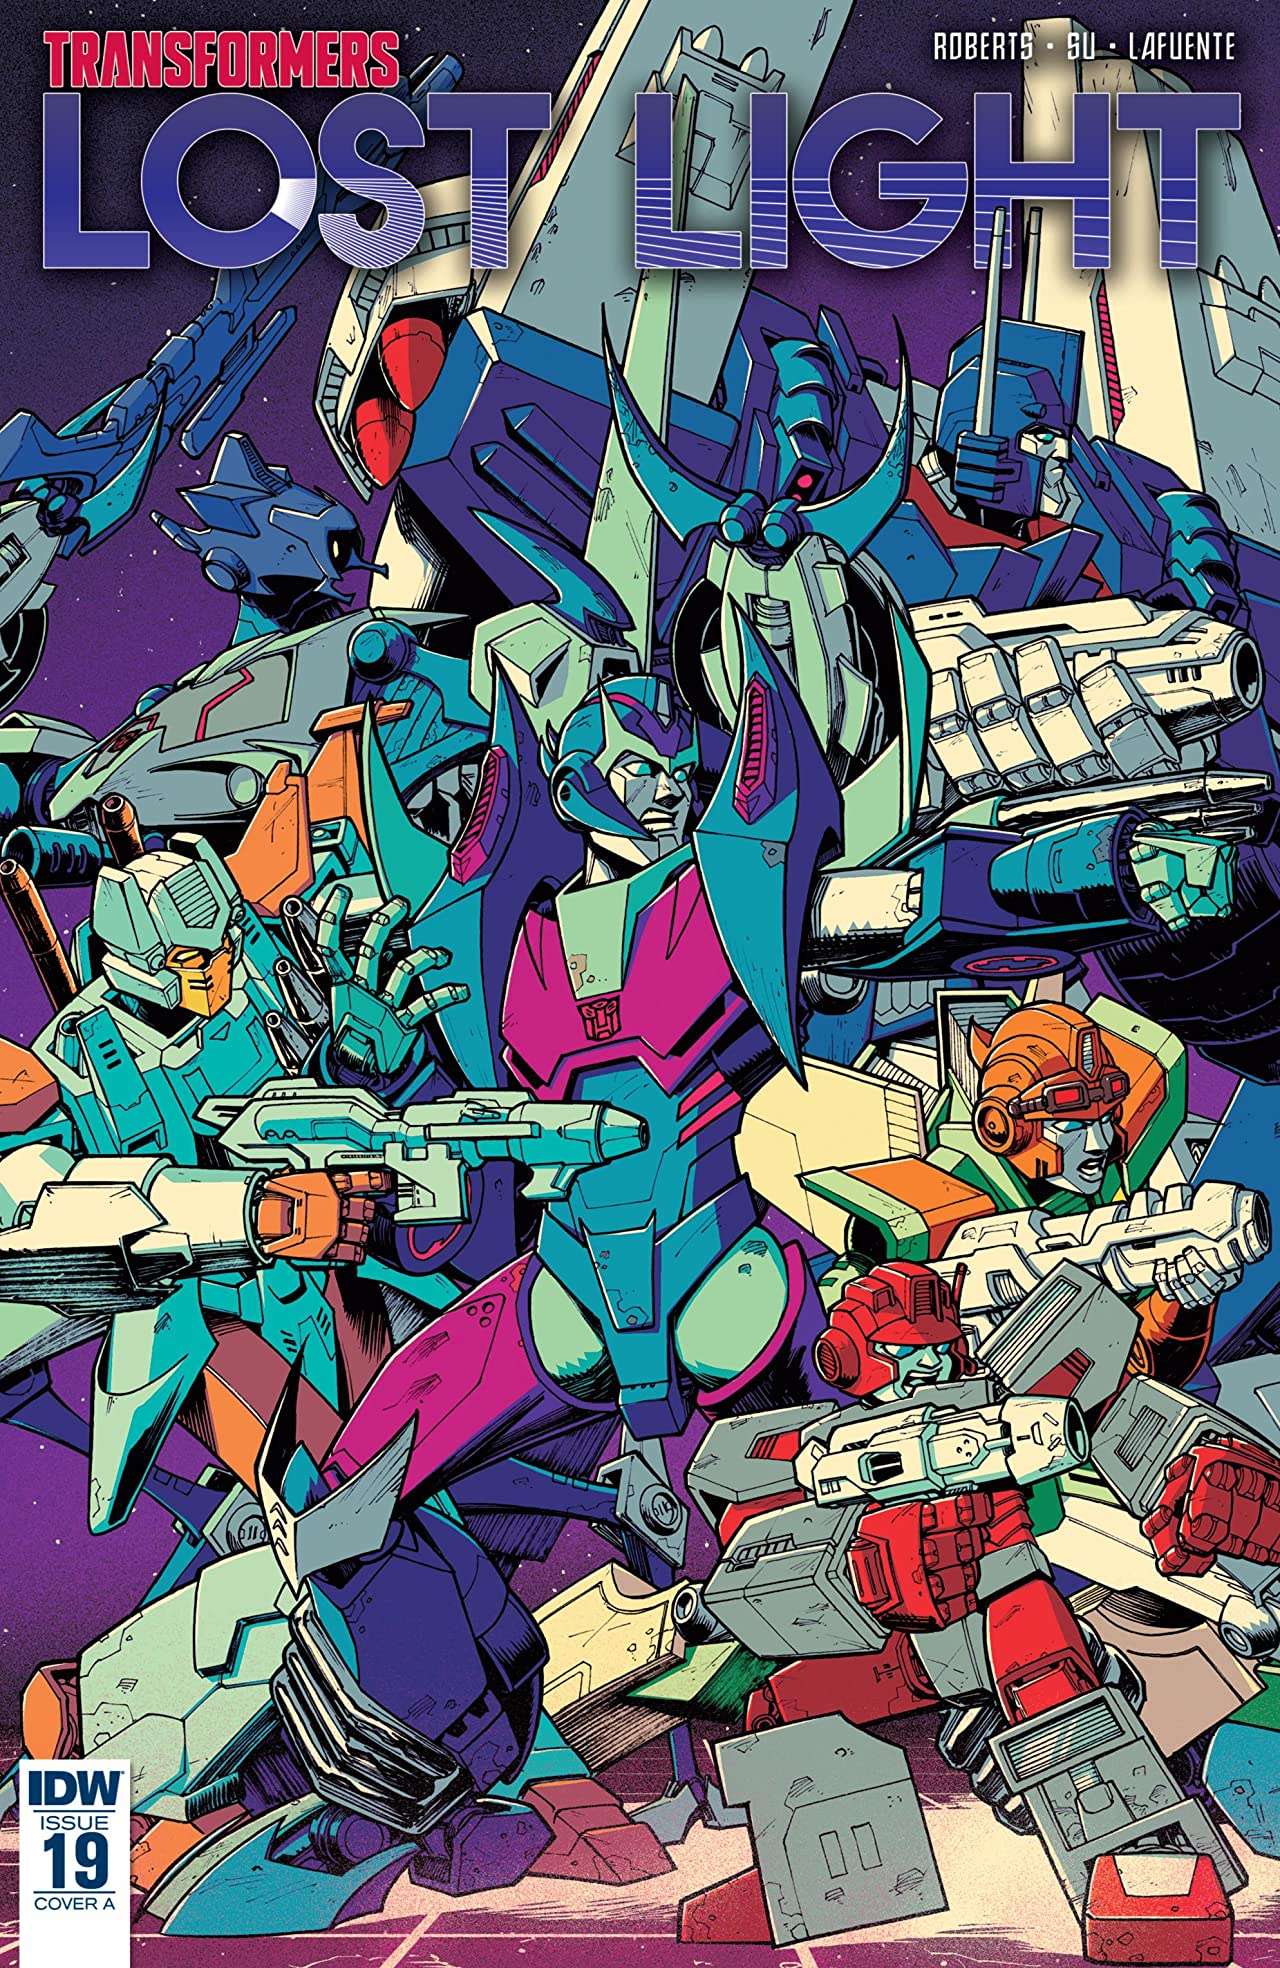 Transformers: Lost Light #19